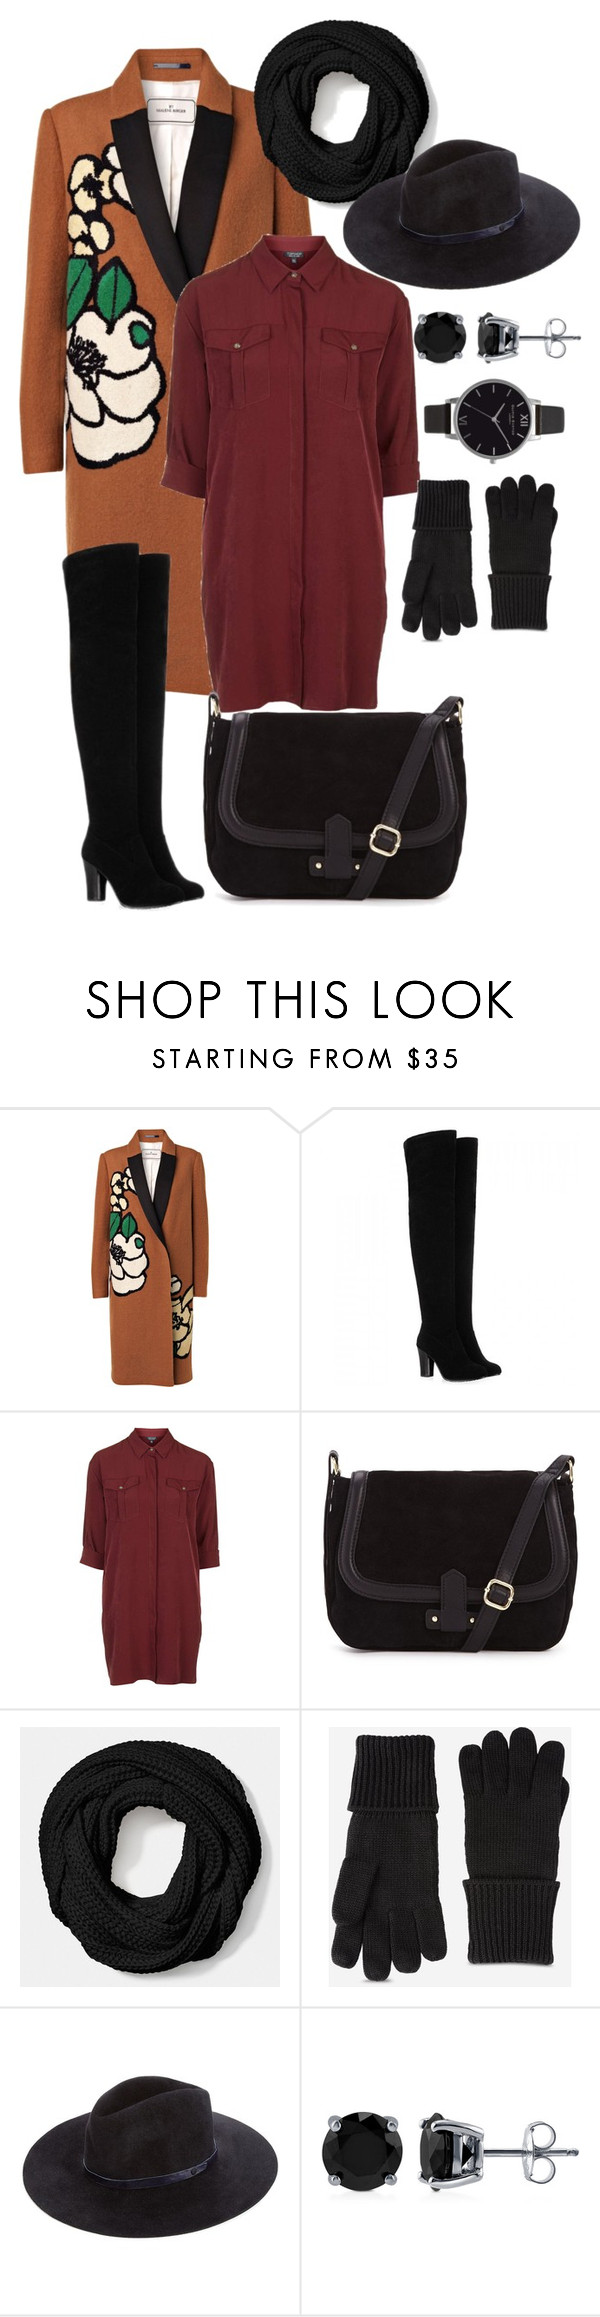 """""""97966"""" by litvinksush ❤ liked on Polyvore featuring By Malene Birger, Topshop, Coach, Y-3, rag & bone, BERRICLE and Olivia Burton"""